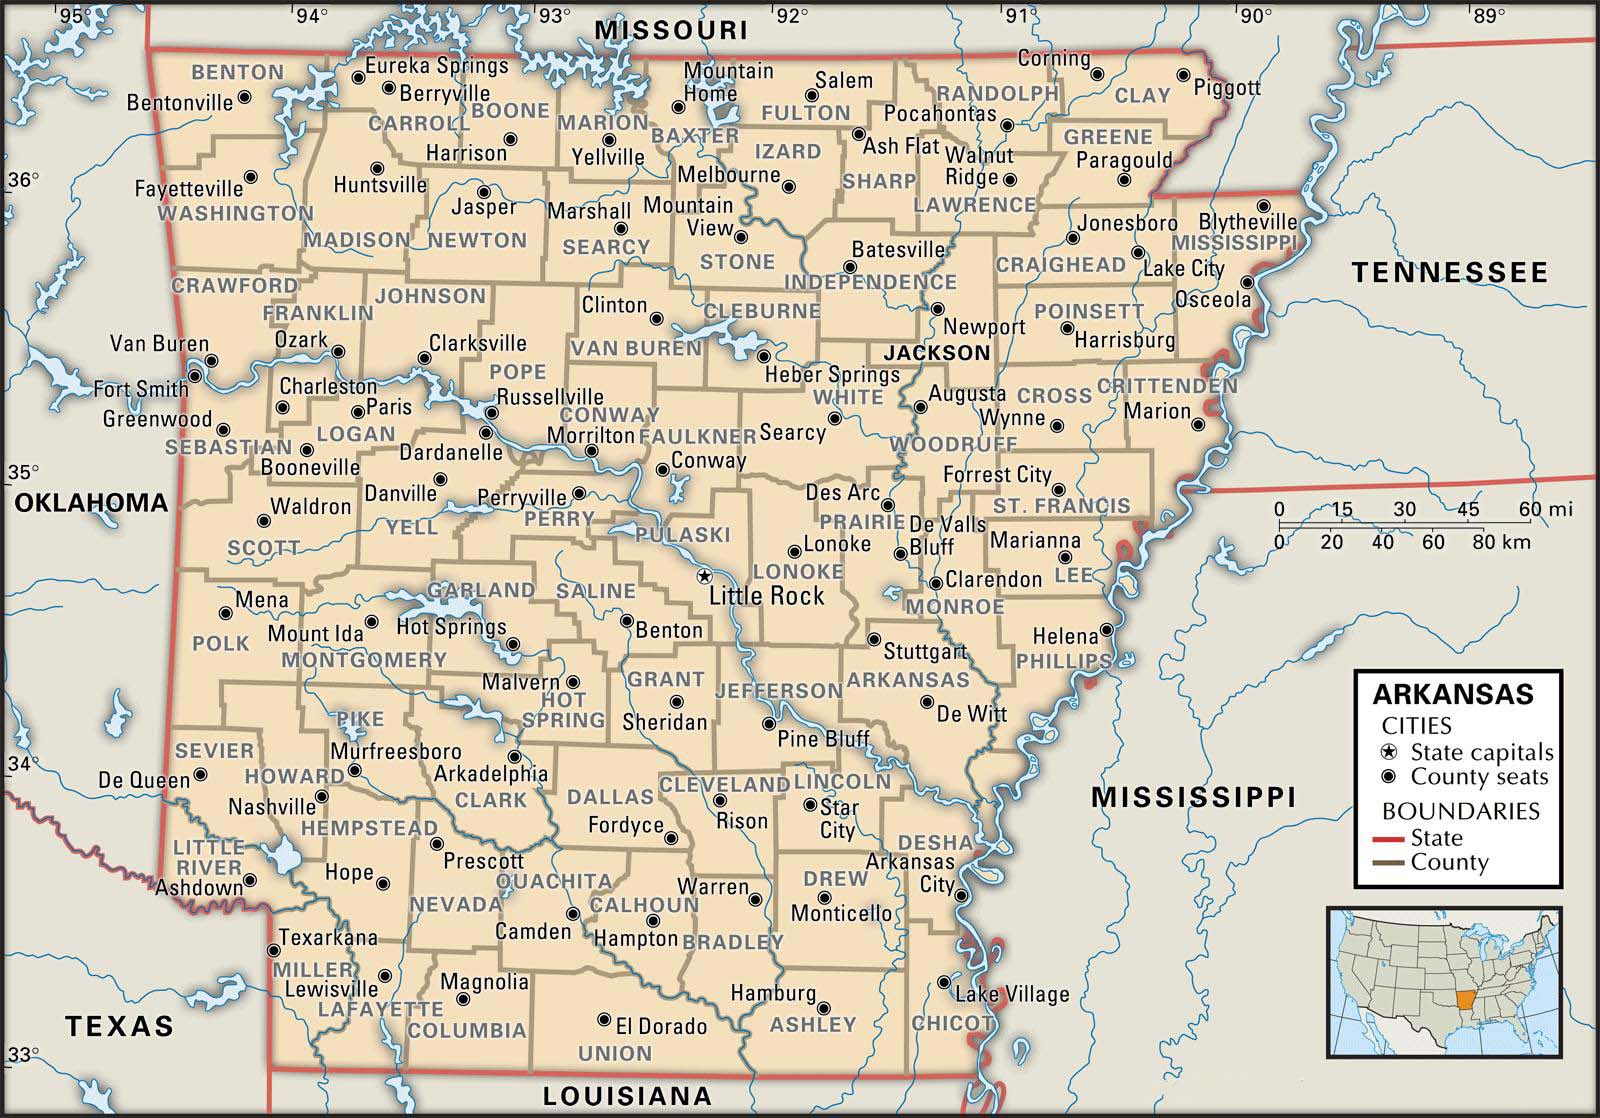 Old Historical City County And State Maps Of Arkansas